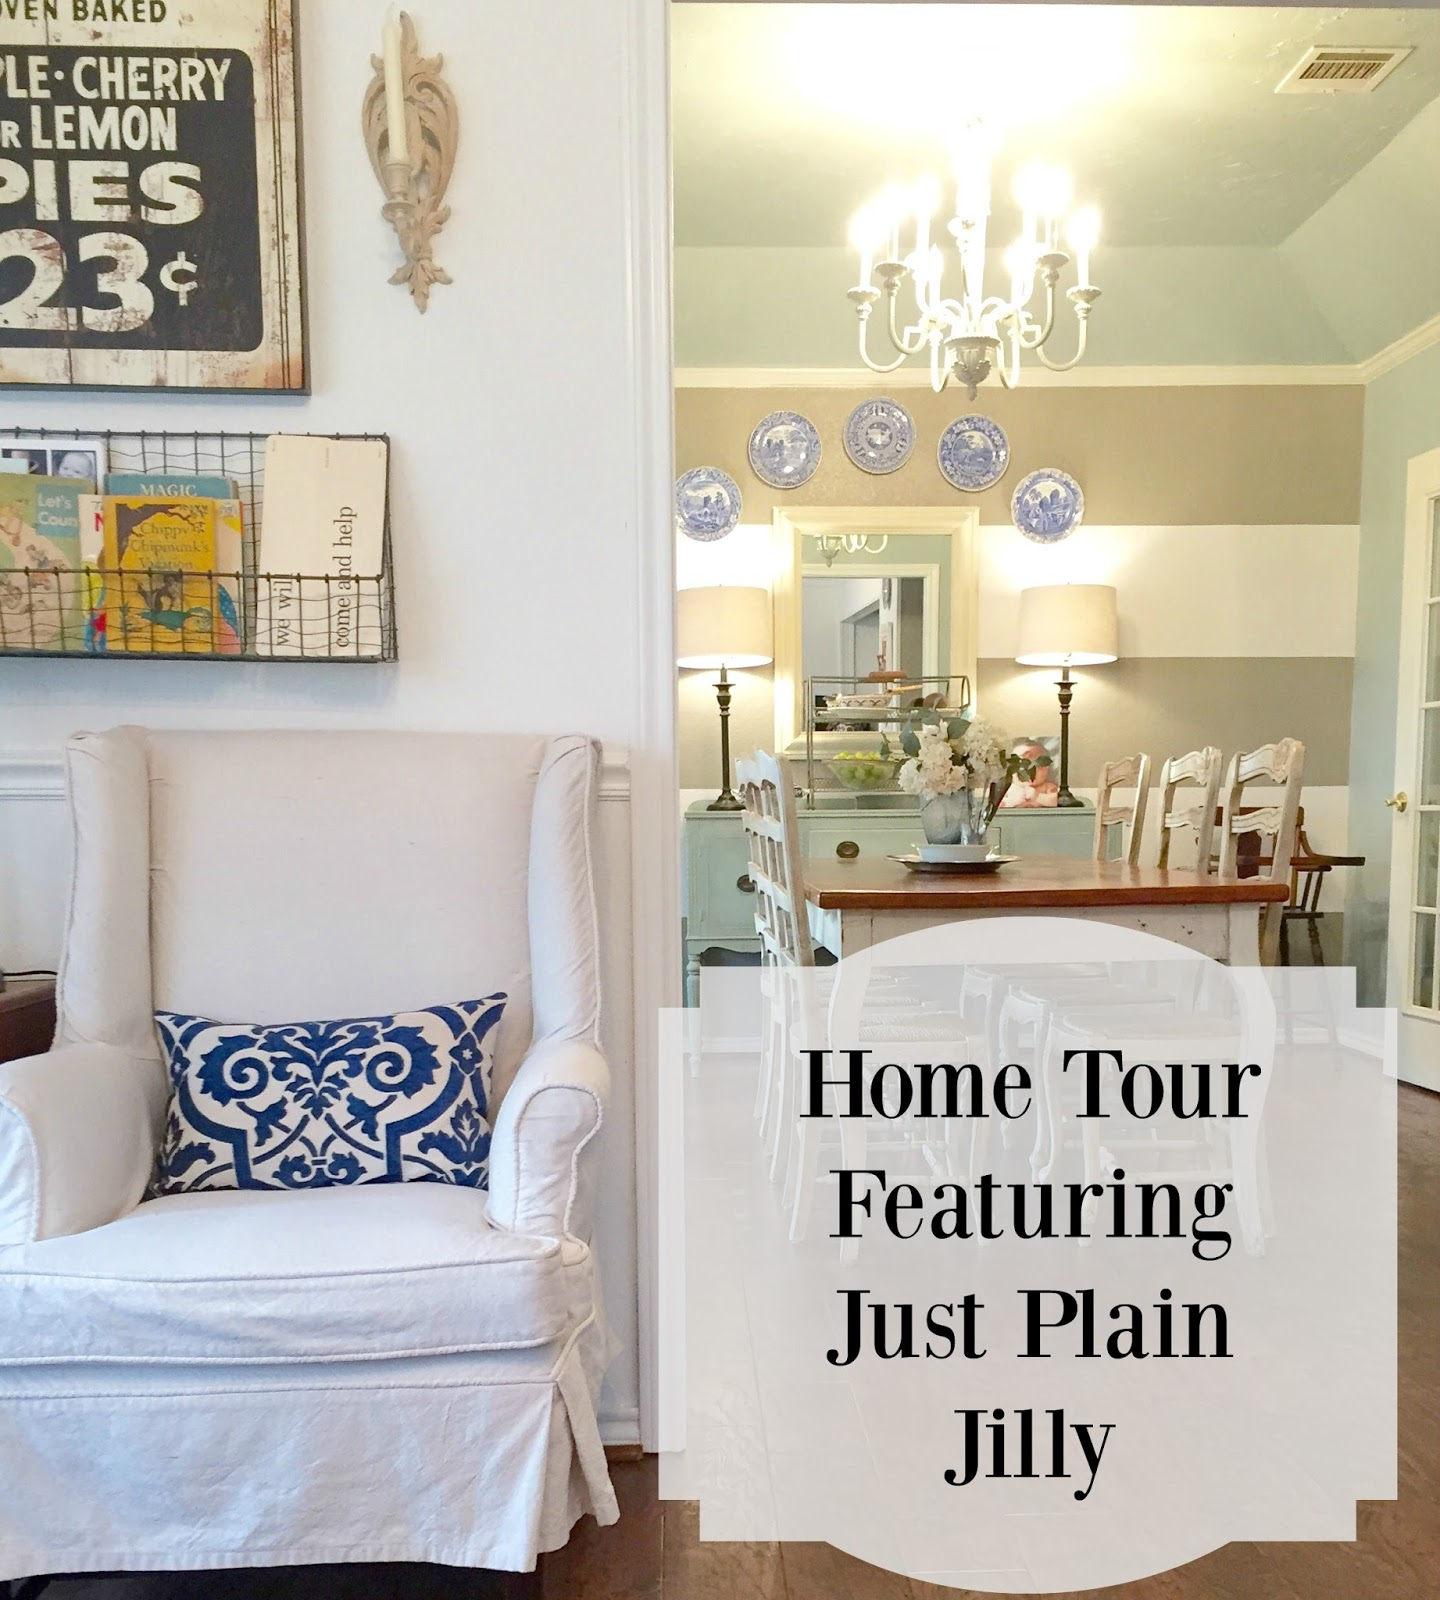 First Friday Home Tour Featuring Just Plain Jilly | Poofing the Pillows